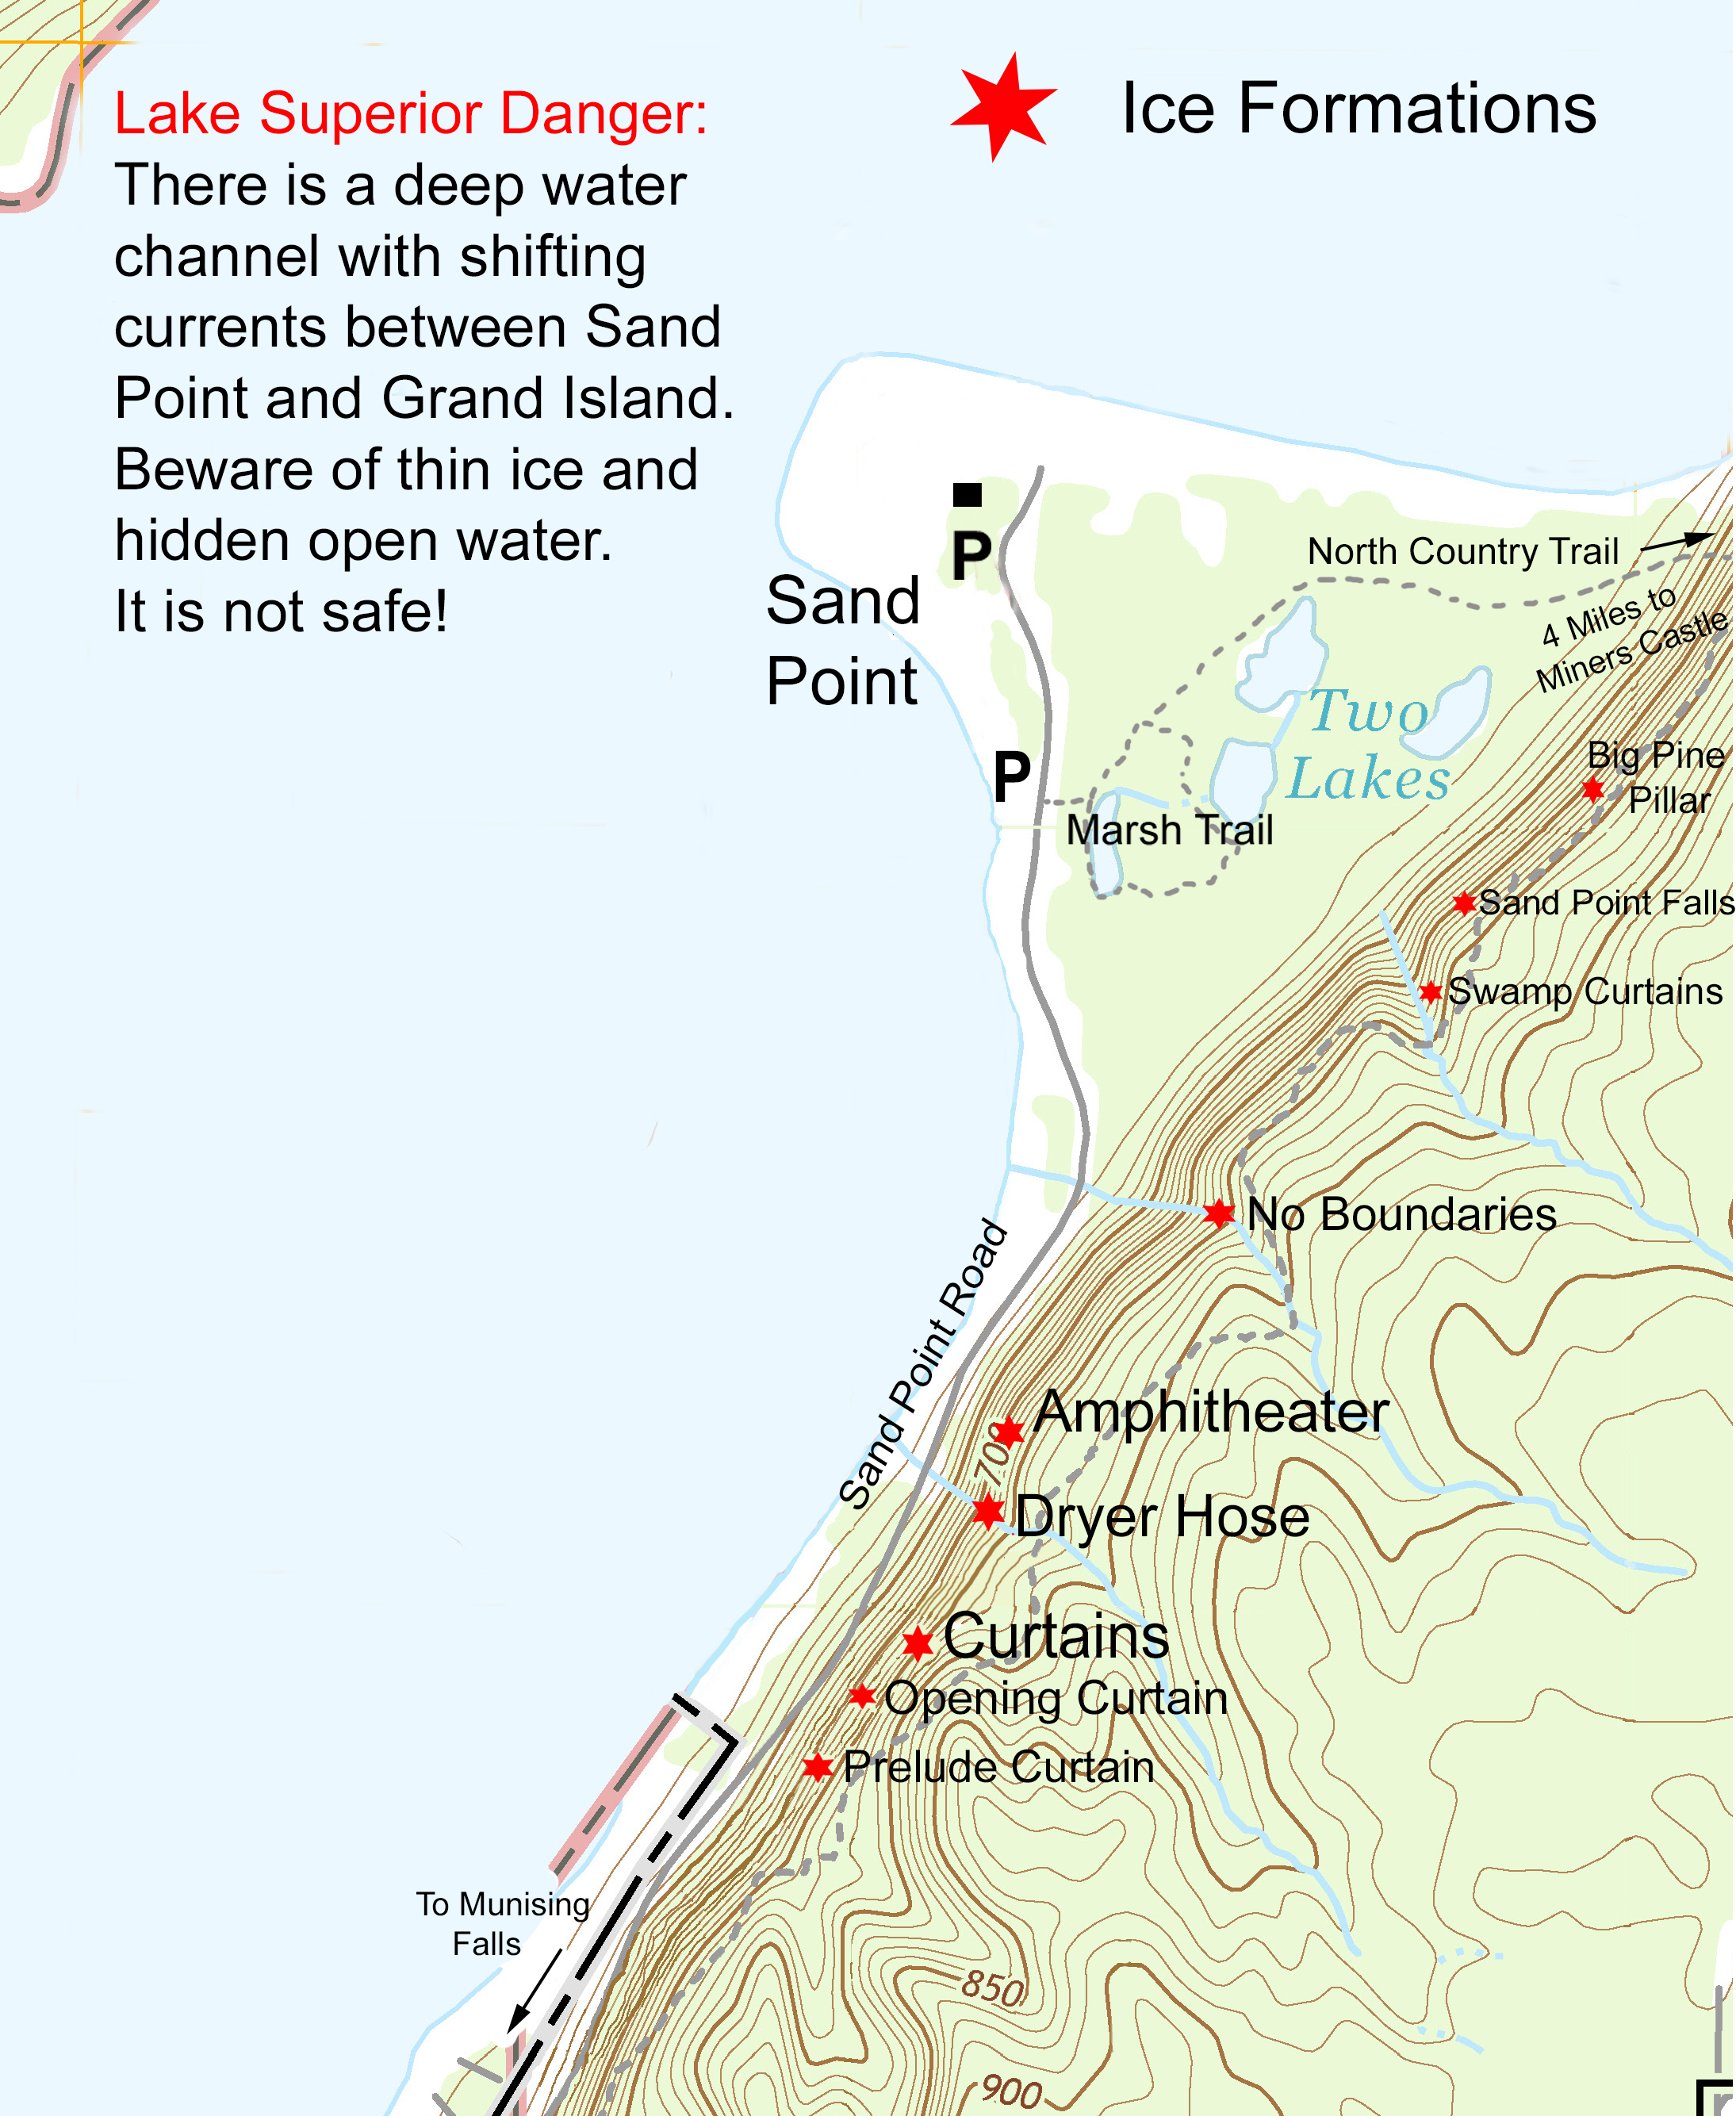 Pictured Rocks Michigan Map.Ice Caves And Ice Formations Pictured Rocks National Lakeshore